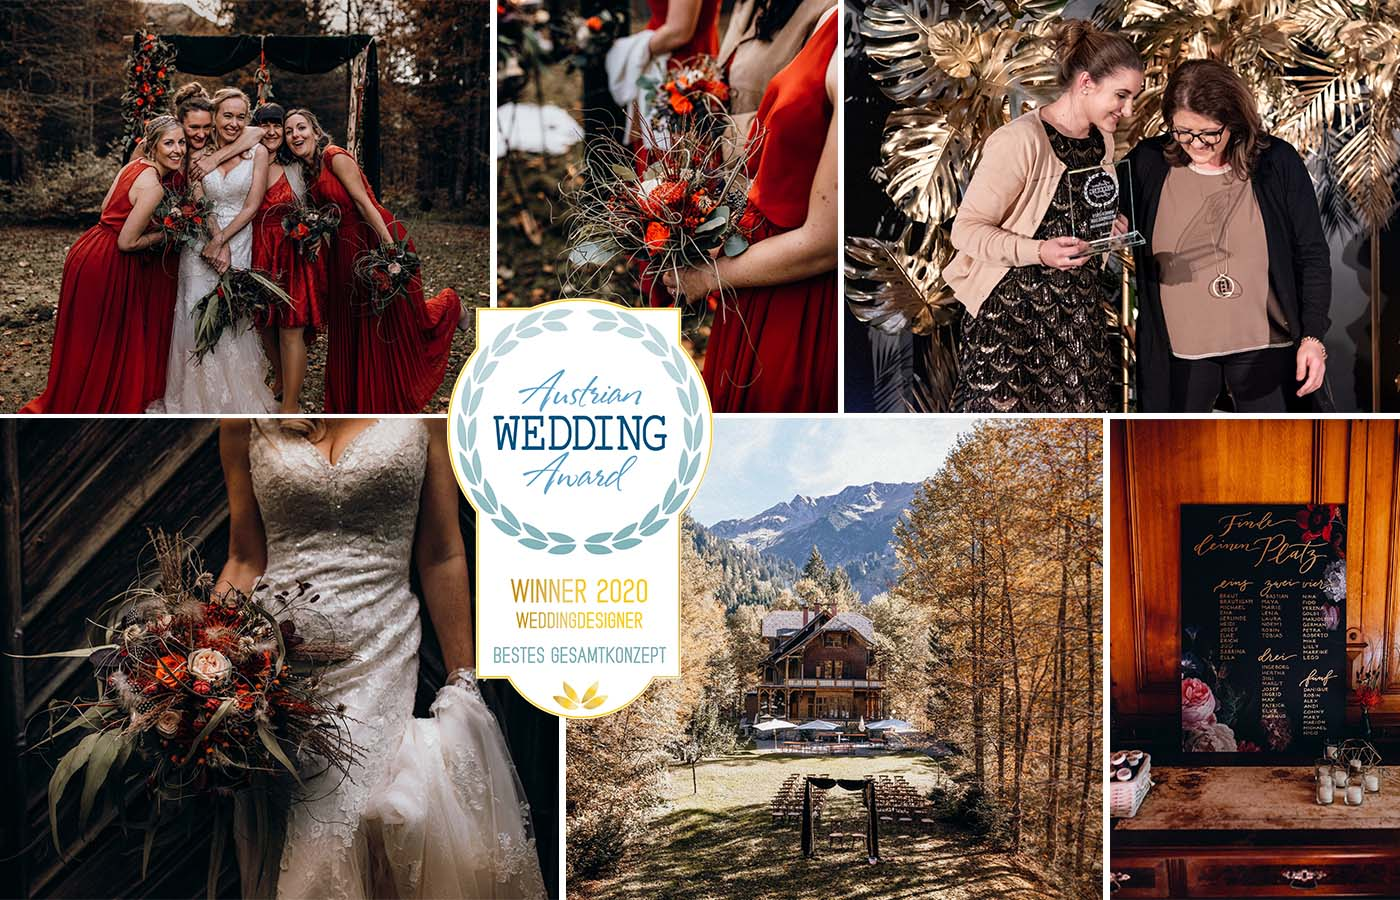 Austrian Wedding Award 2020